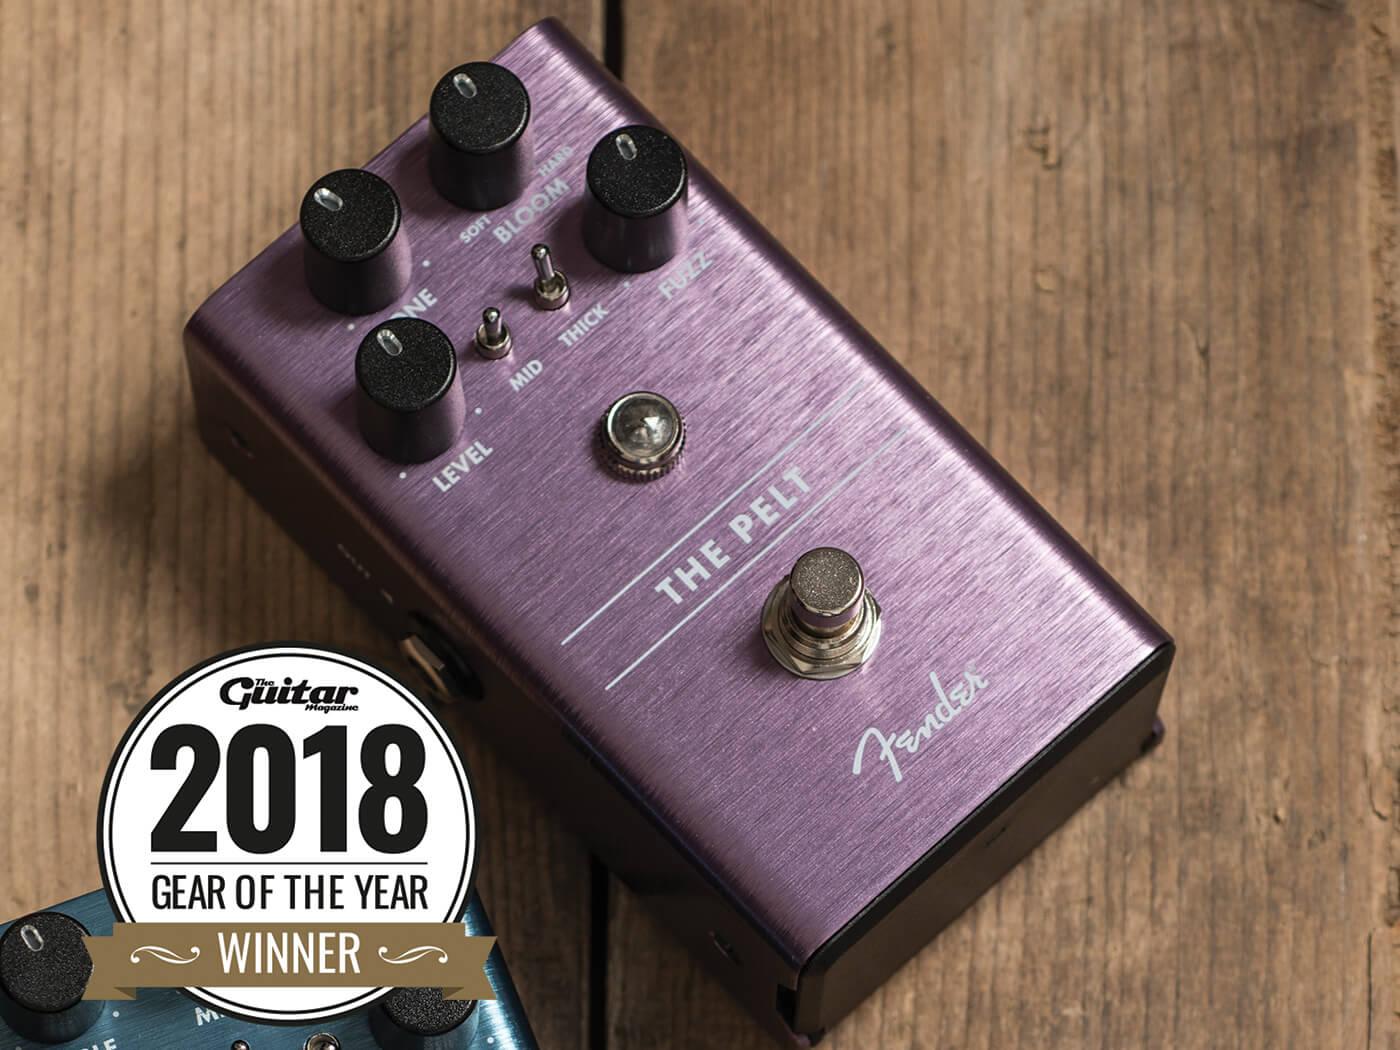 Gear of the Year 2018: Best affordable pedals - Guitar com